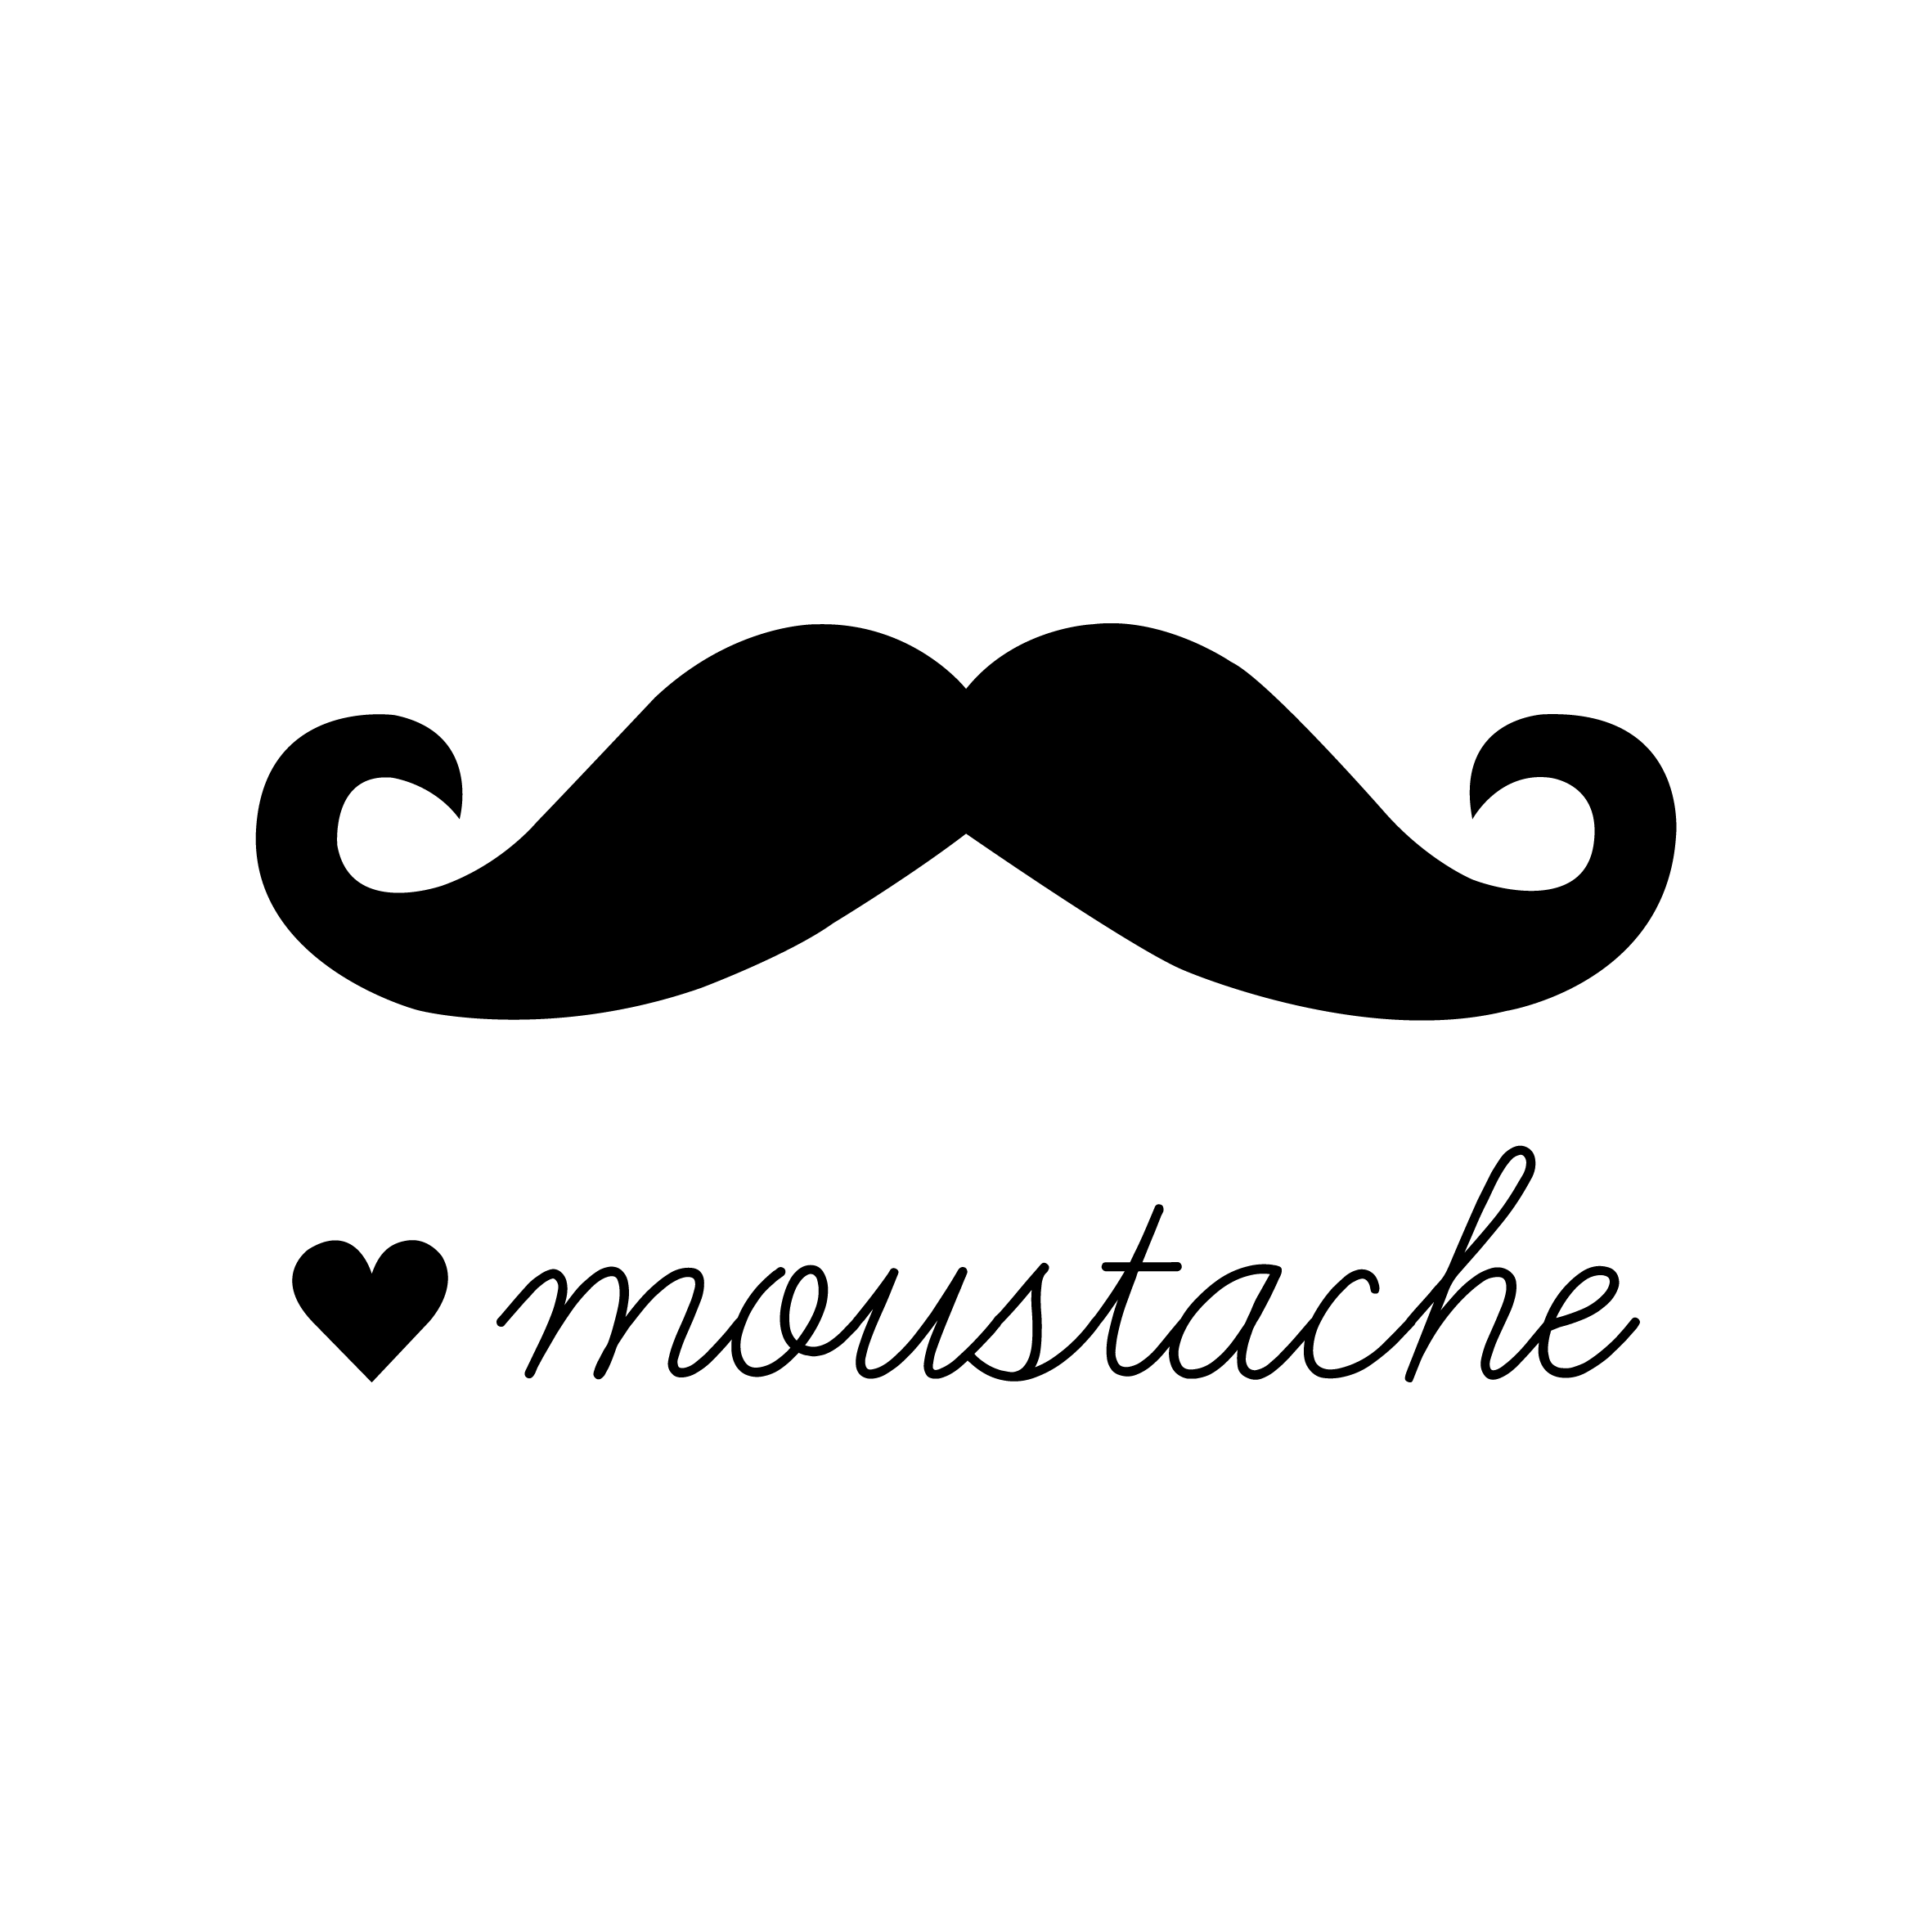 Mustache clipart twirly. Cartoon handlebar